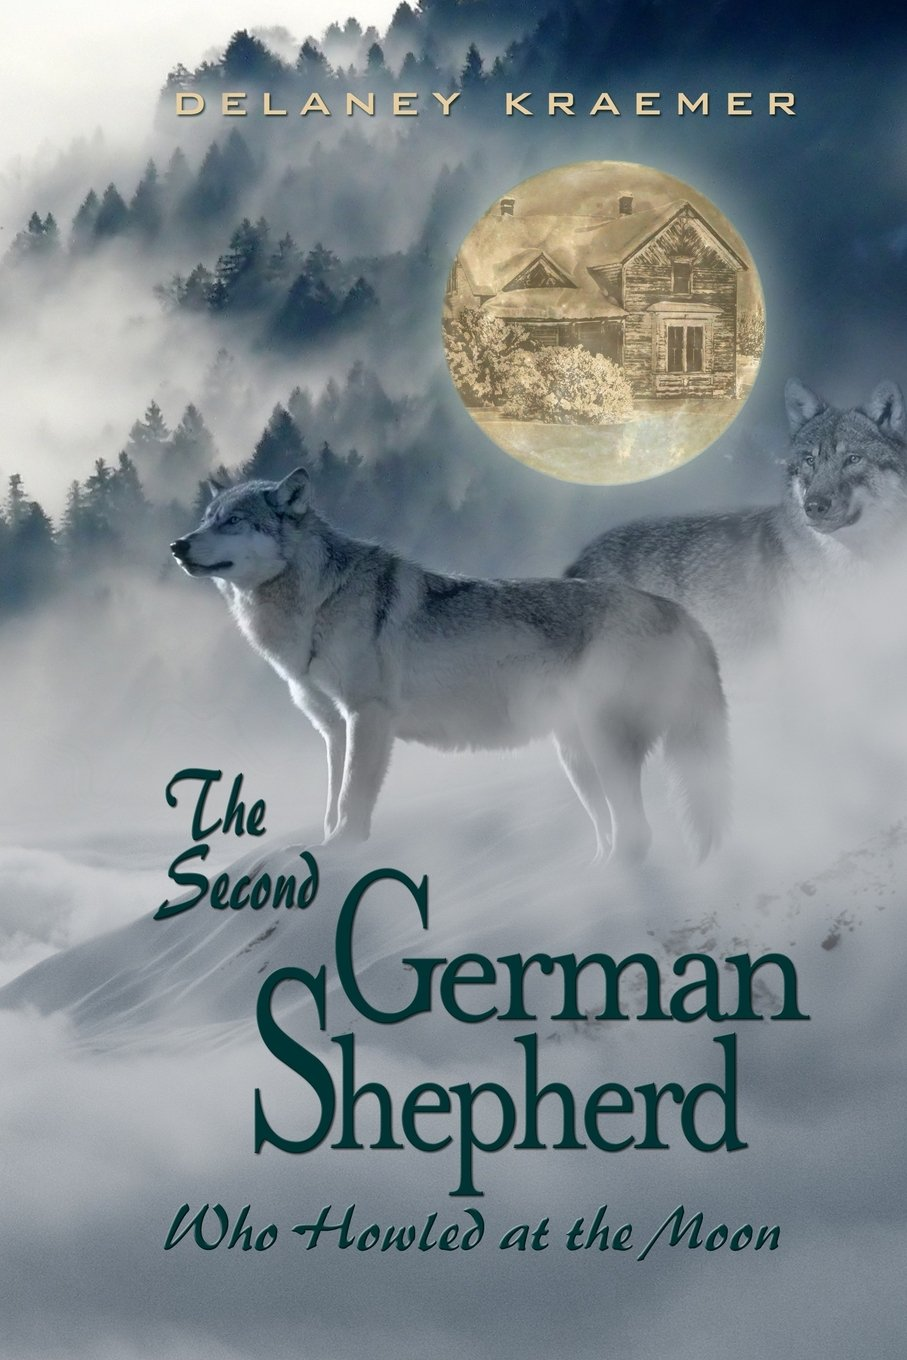 Download The Second German Shepherd who Howled at the Moon pdf